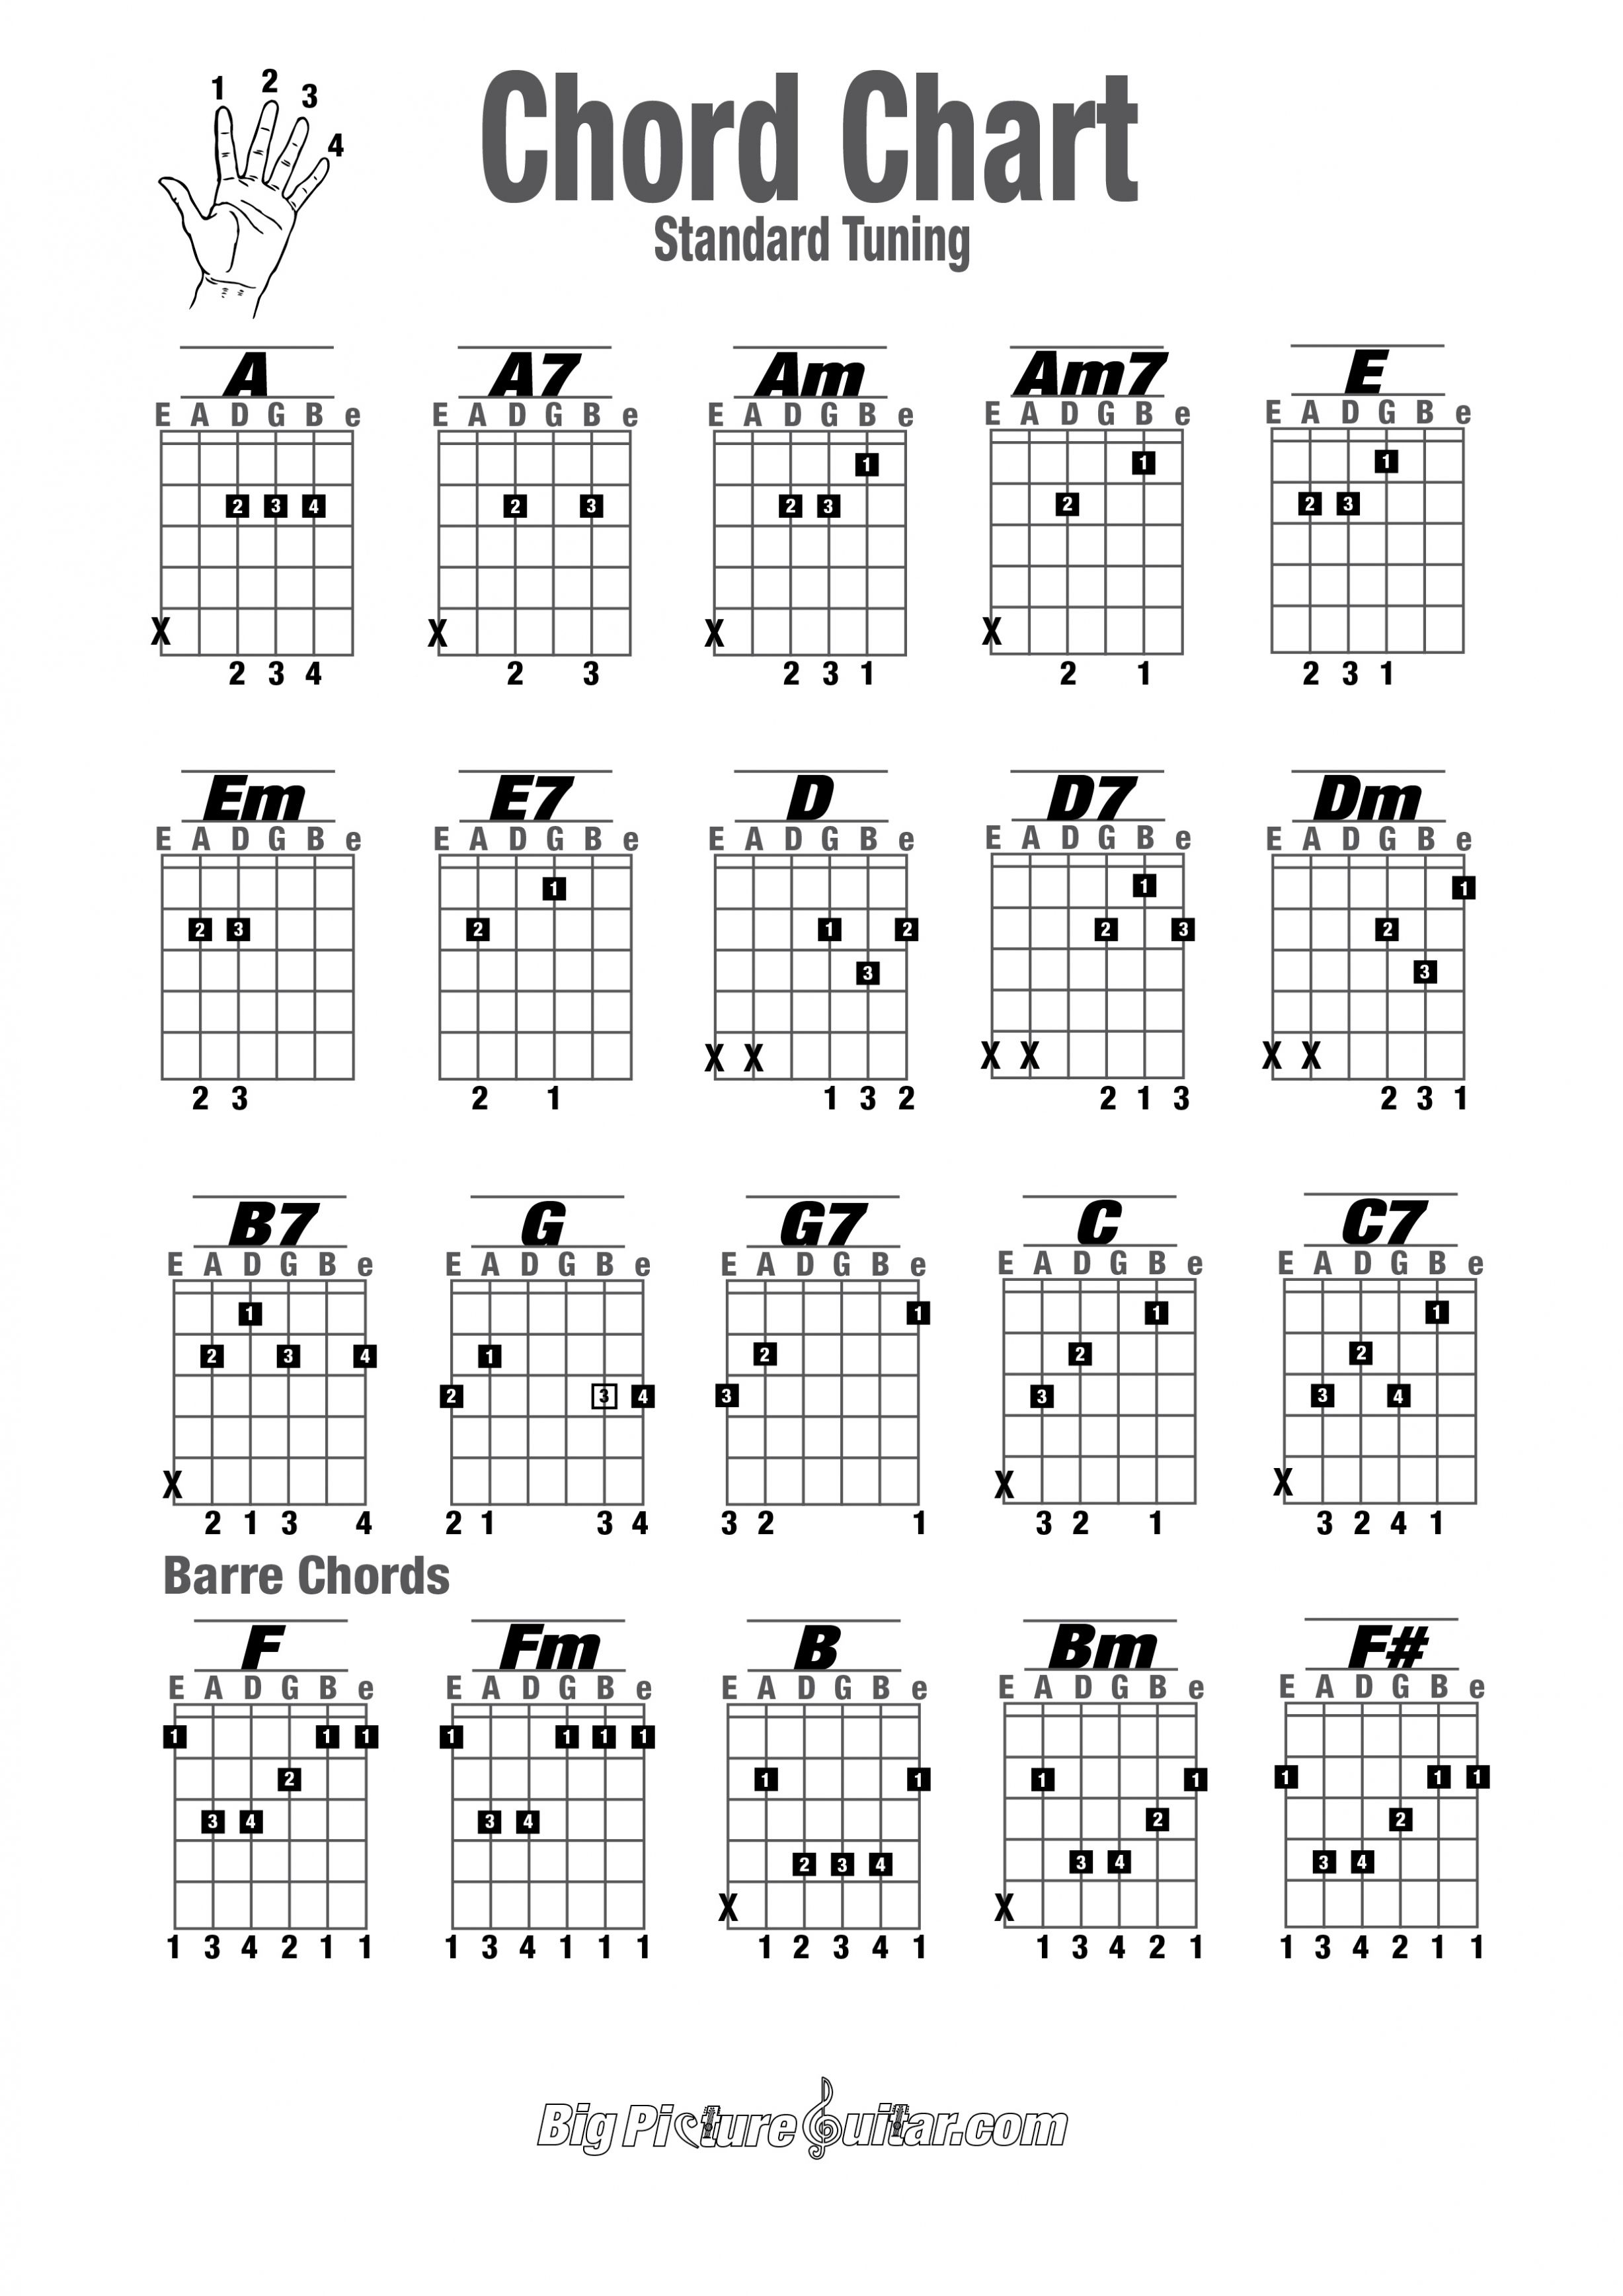 Precise Broken Chords Chart 7th Chords Guitar Chart Guitar Cords Chart For Beginners Complete